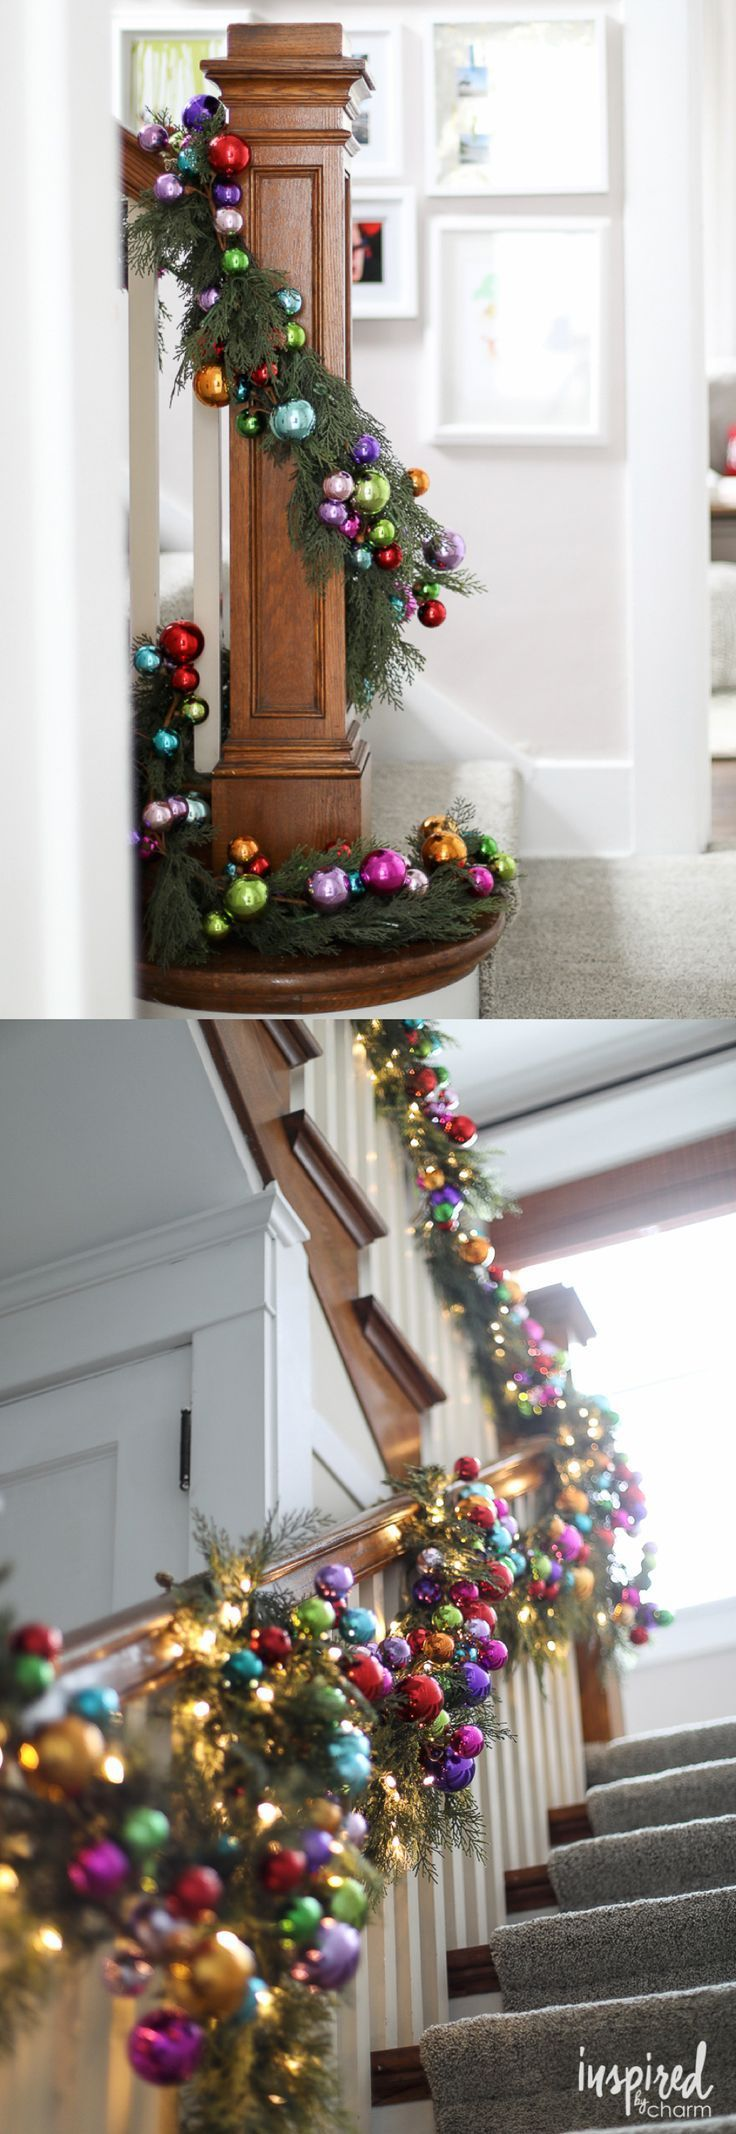 Christmas Decorating Ideas Colorful Christmas Ornament And Pine